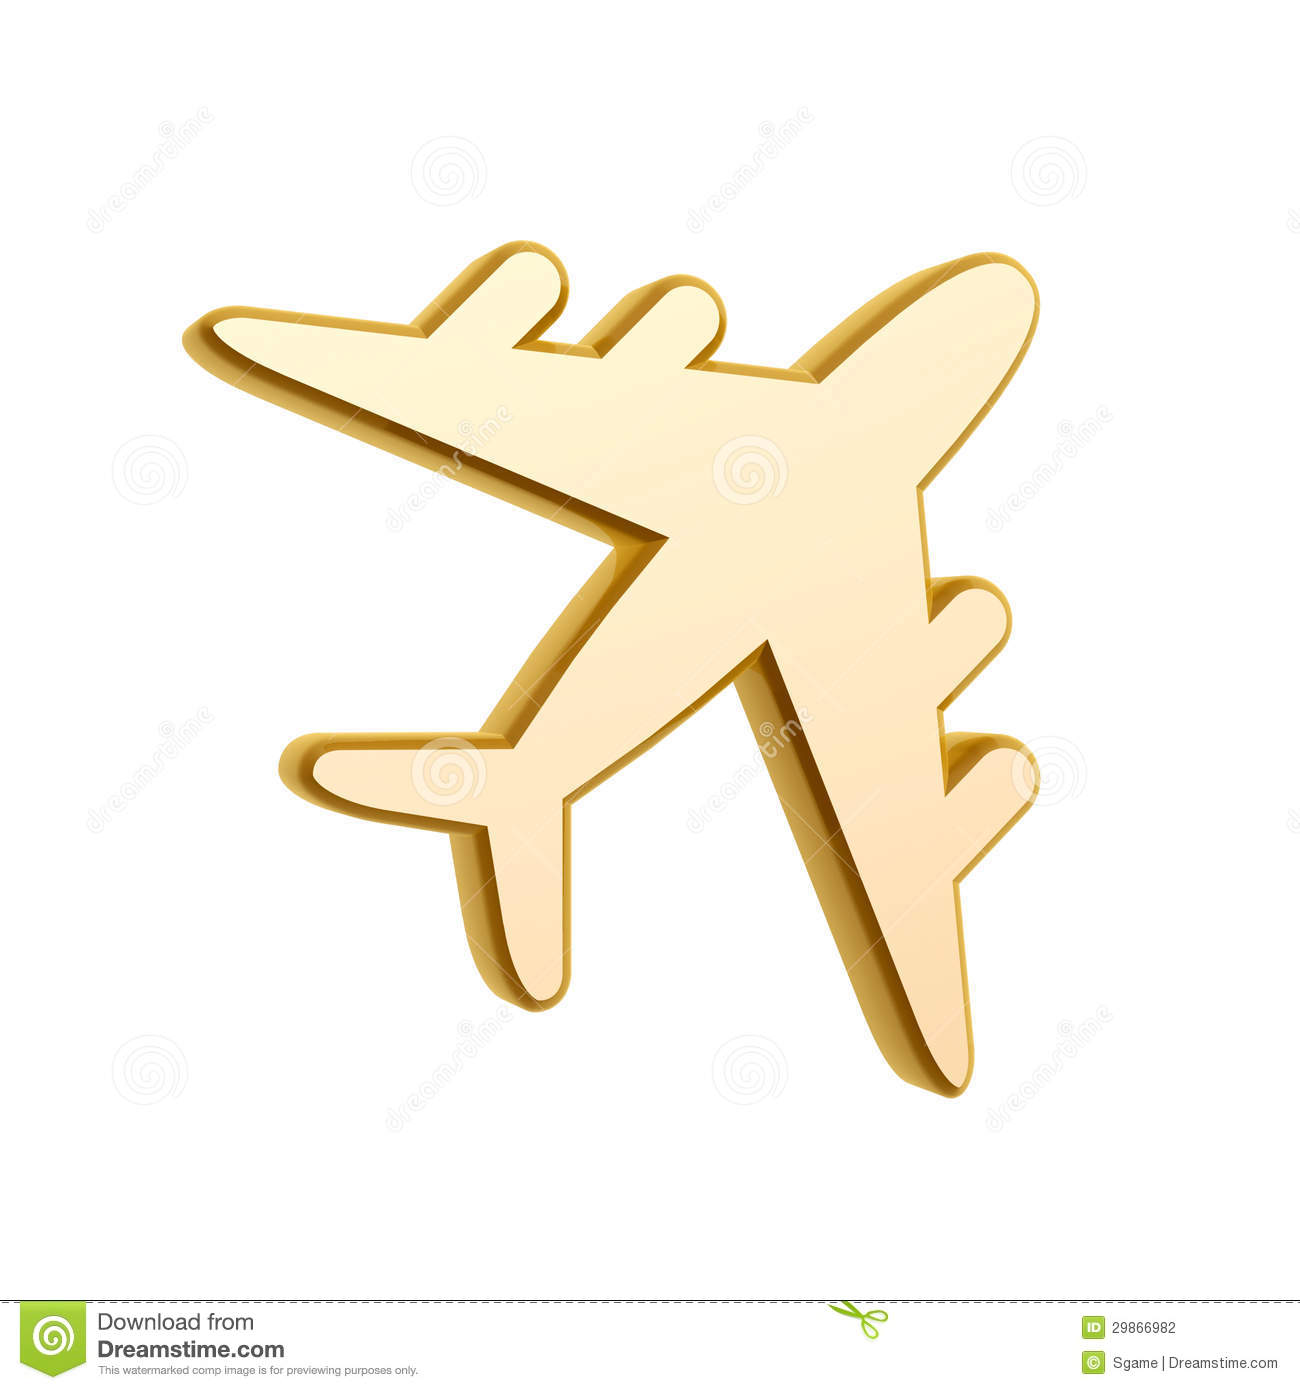 toy aeroplanes with Stock Photography Golden Plane Symbol Isolated White Background Image29866982 on Fine Airplane Coloring Page Wecoloringpage also Papercraft in addition Virgin Atlantic in addition Airtanker And Thomas Cook Airlines Agree Landmark Civil Leasing Deal besides Flight Paper Airplanes.